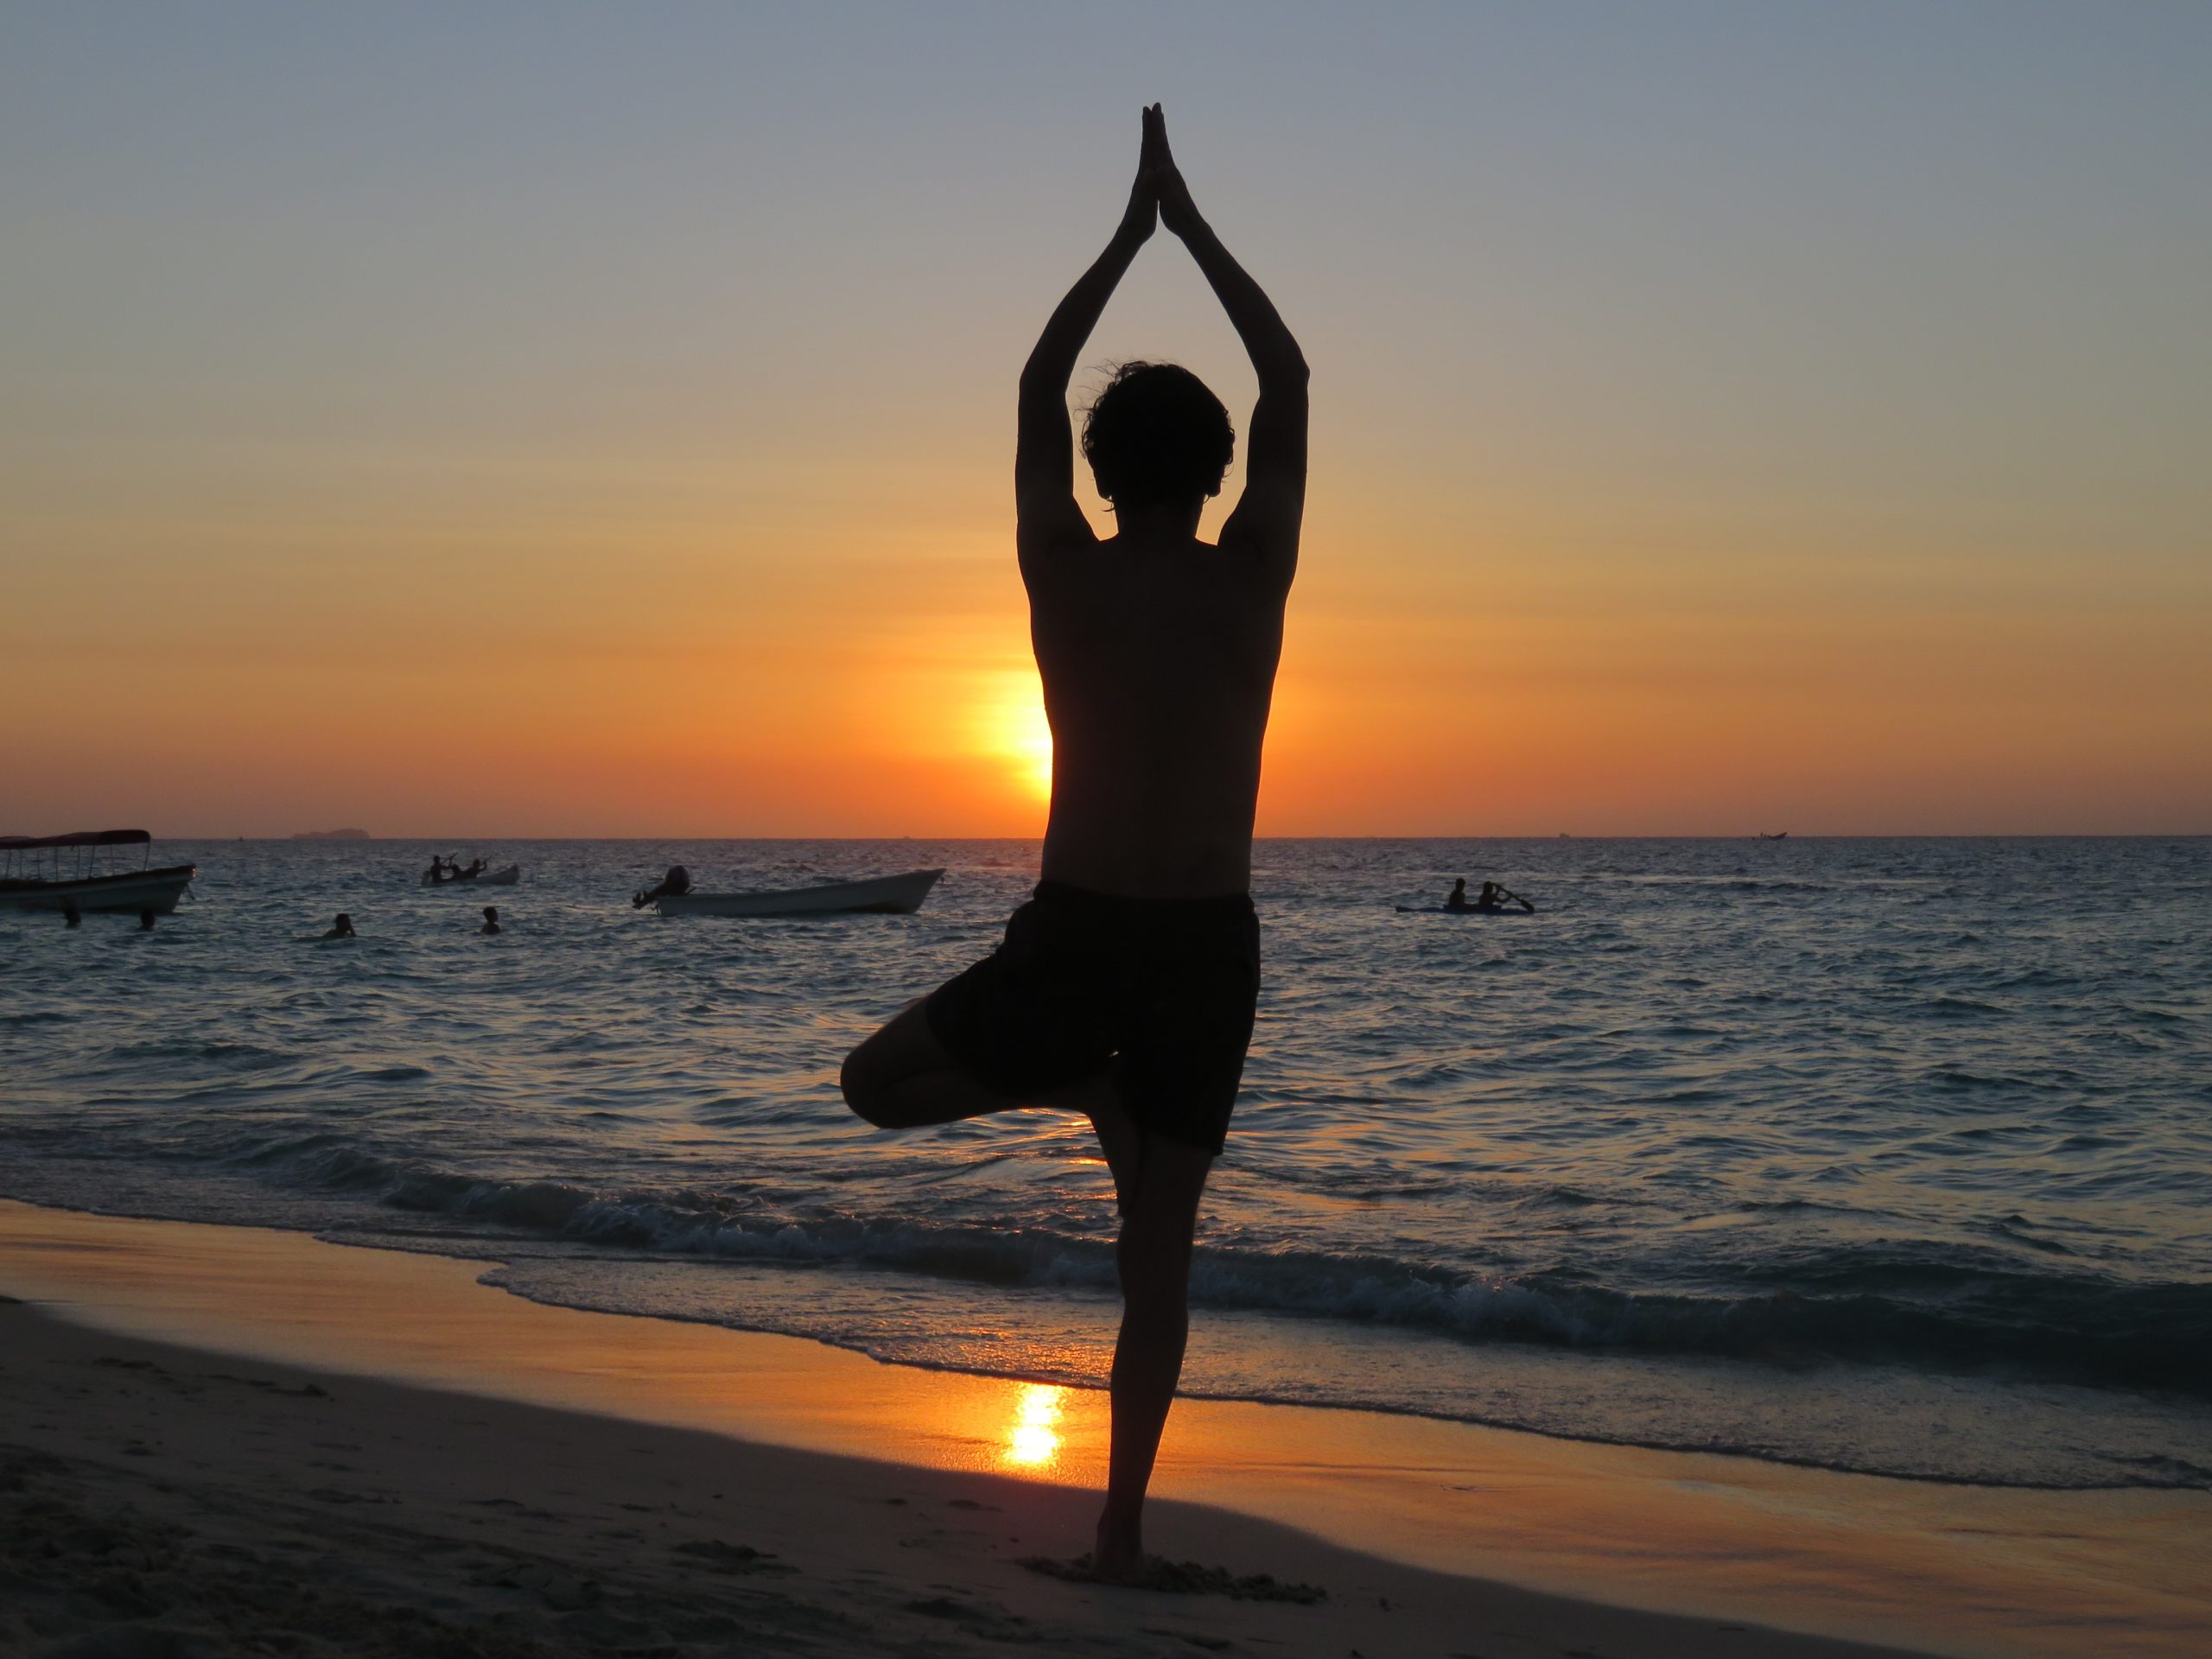 Lady in a yoga pose on the beach at sunset